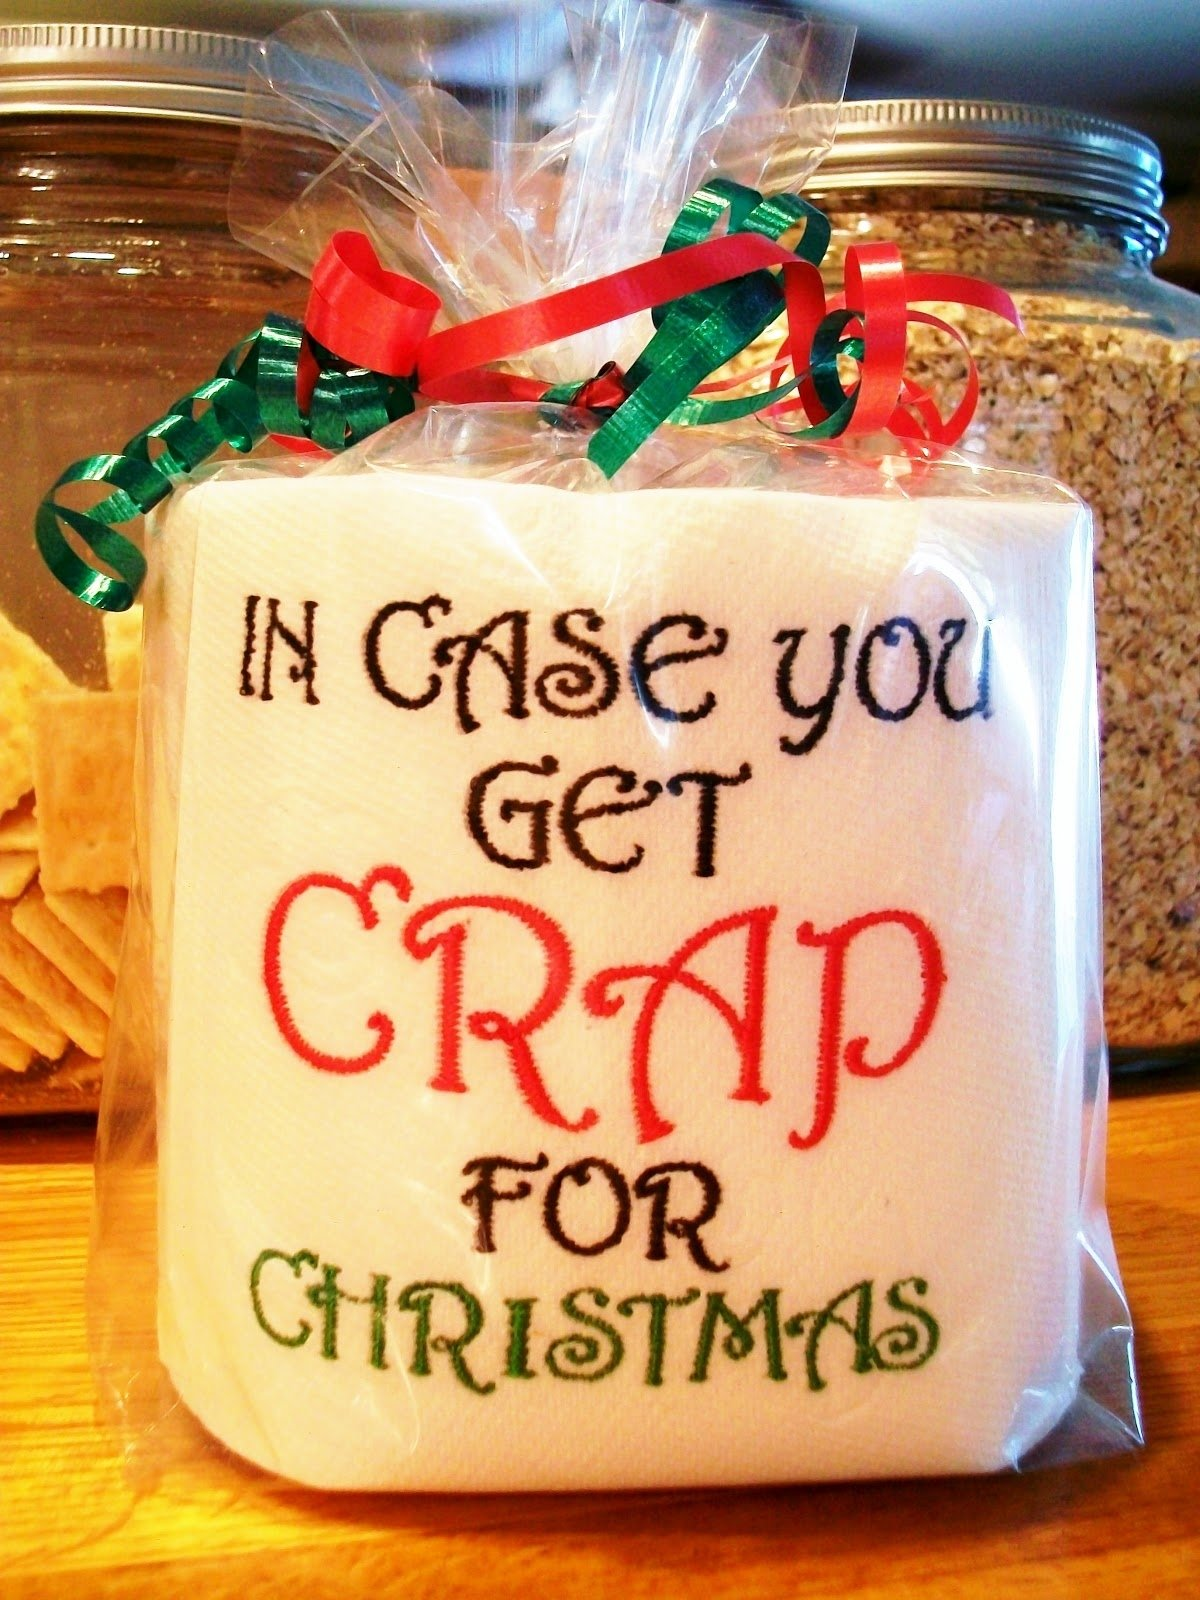 10 Famous Hilarious White Elephant Gift Ideas funny gag in case you get crap for christmas useful and funny 4 2021